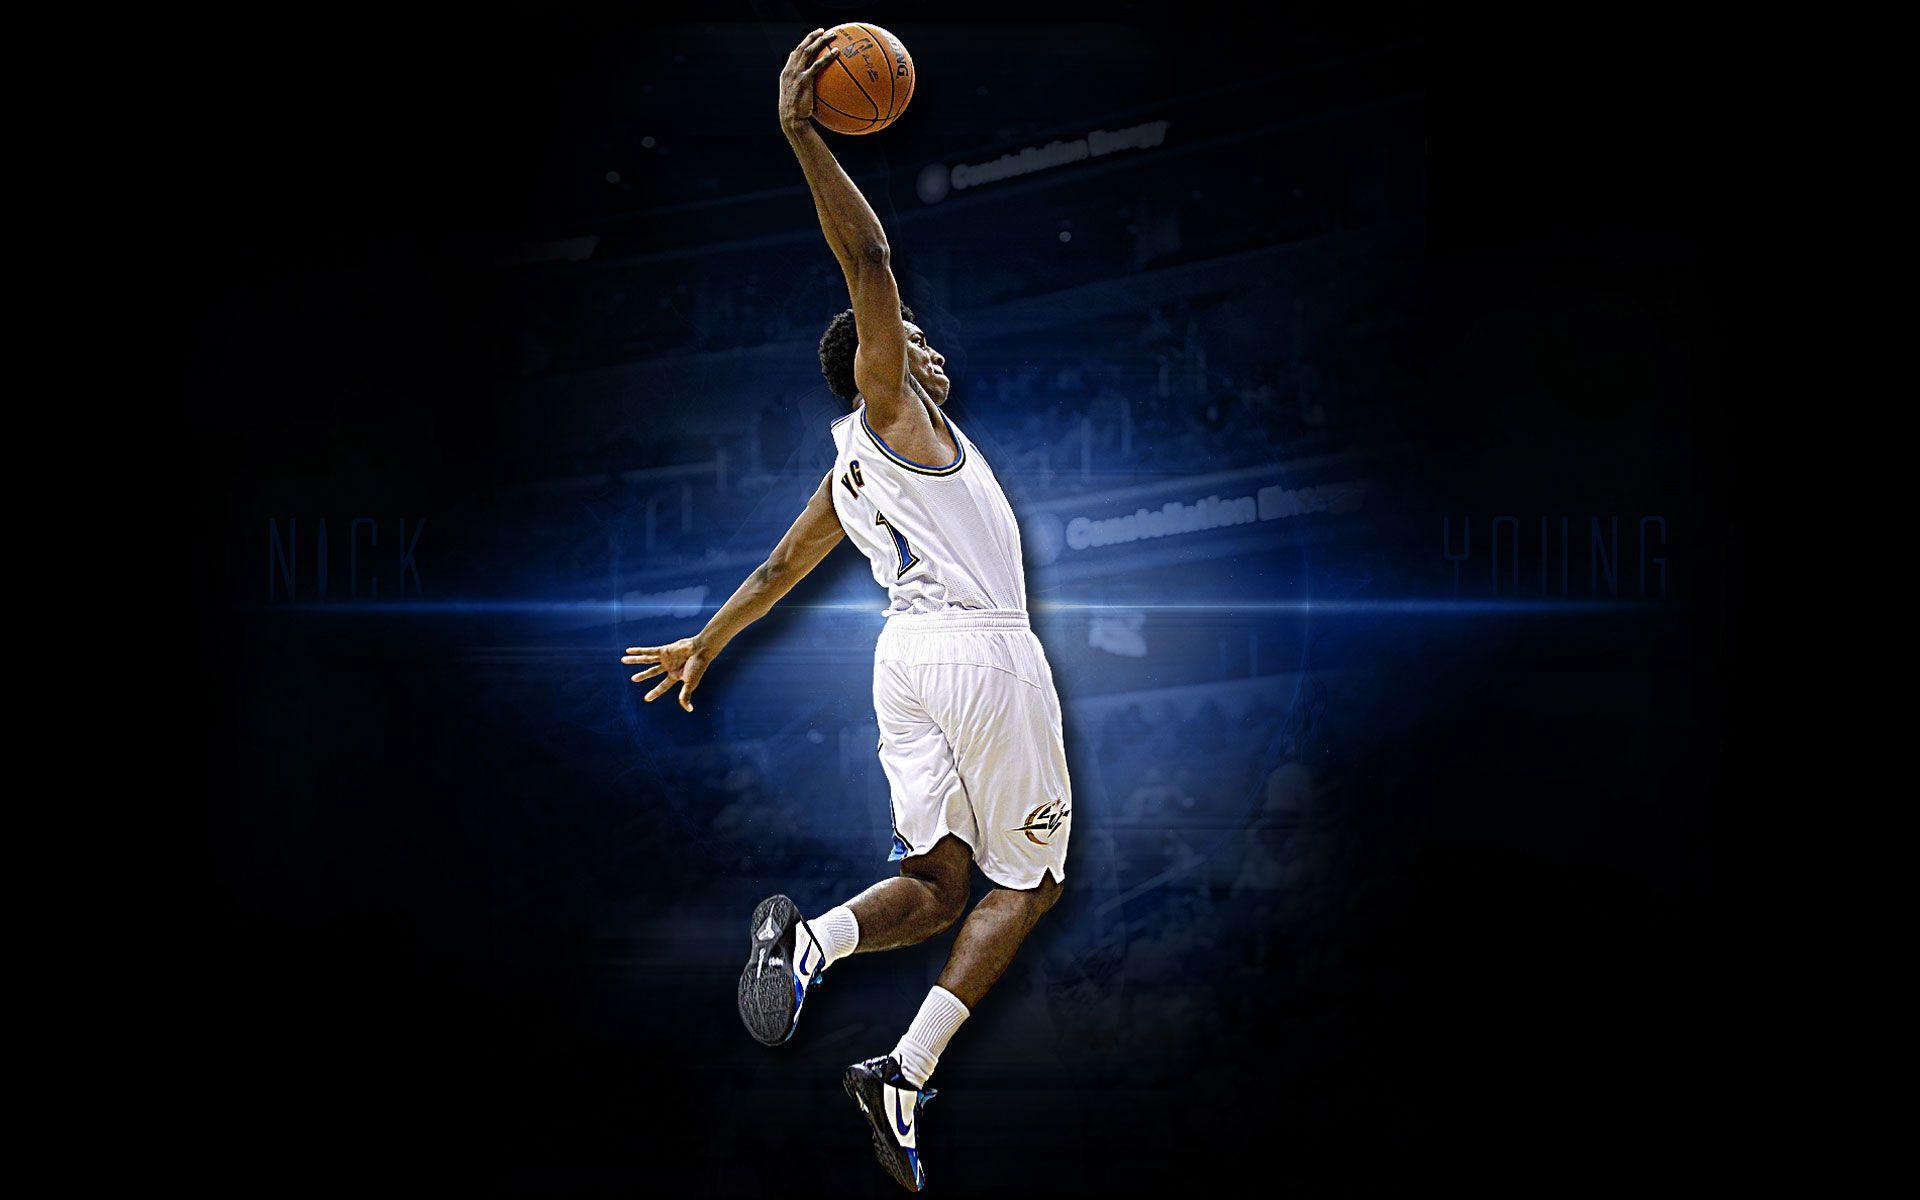 Basketball Player Wallpapers - WallpaperSafari